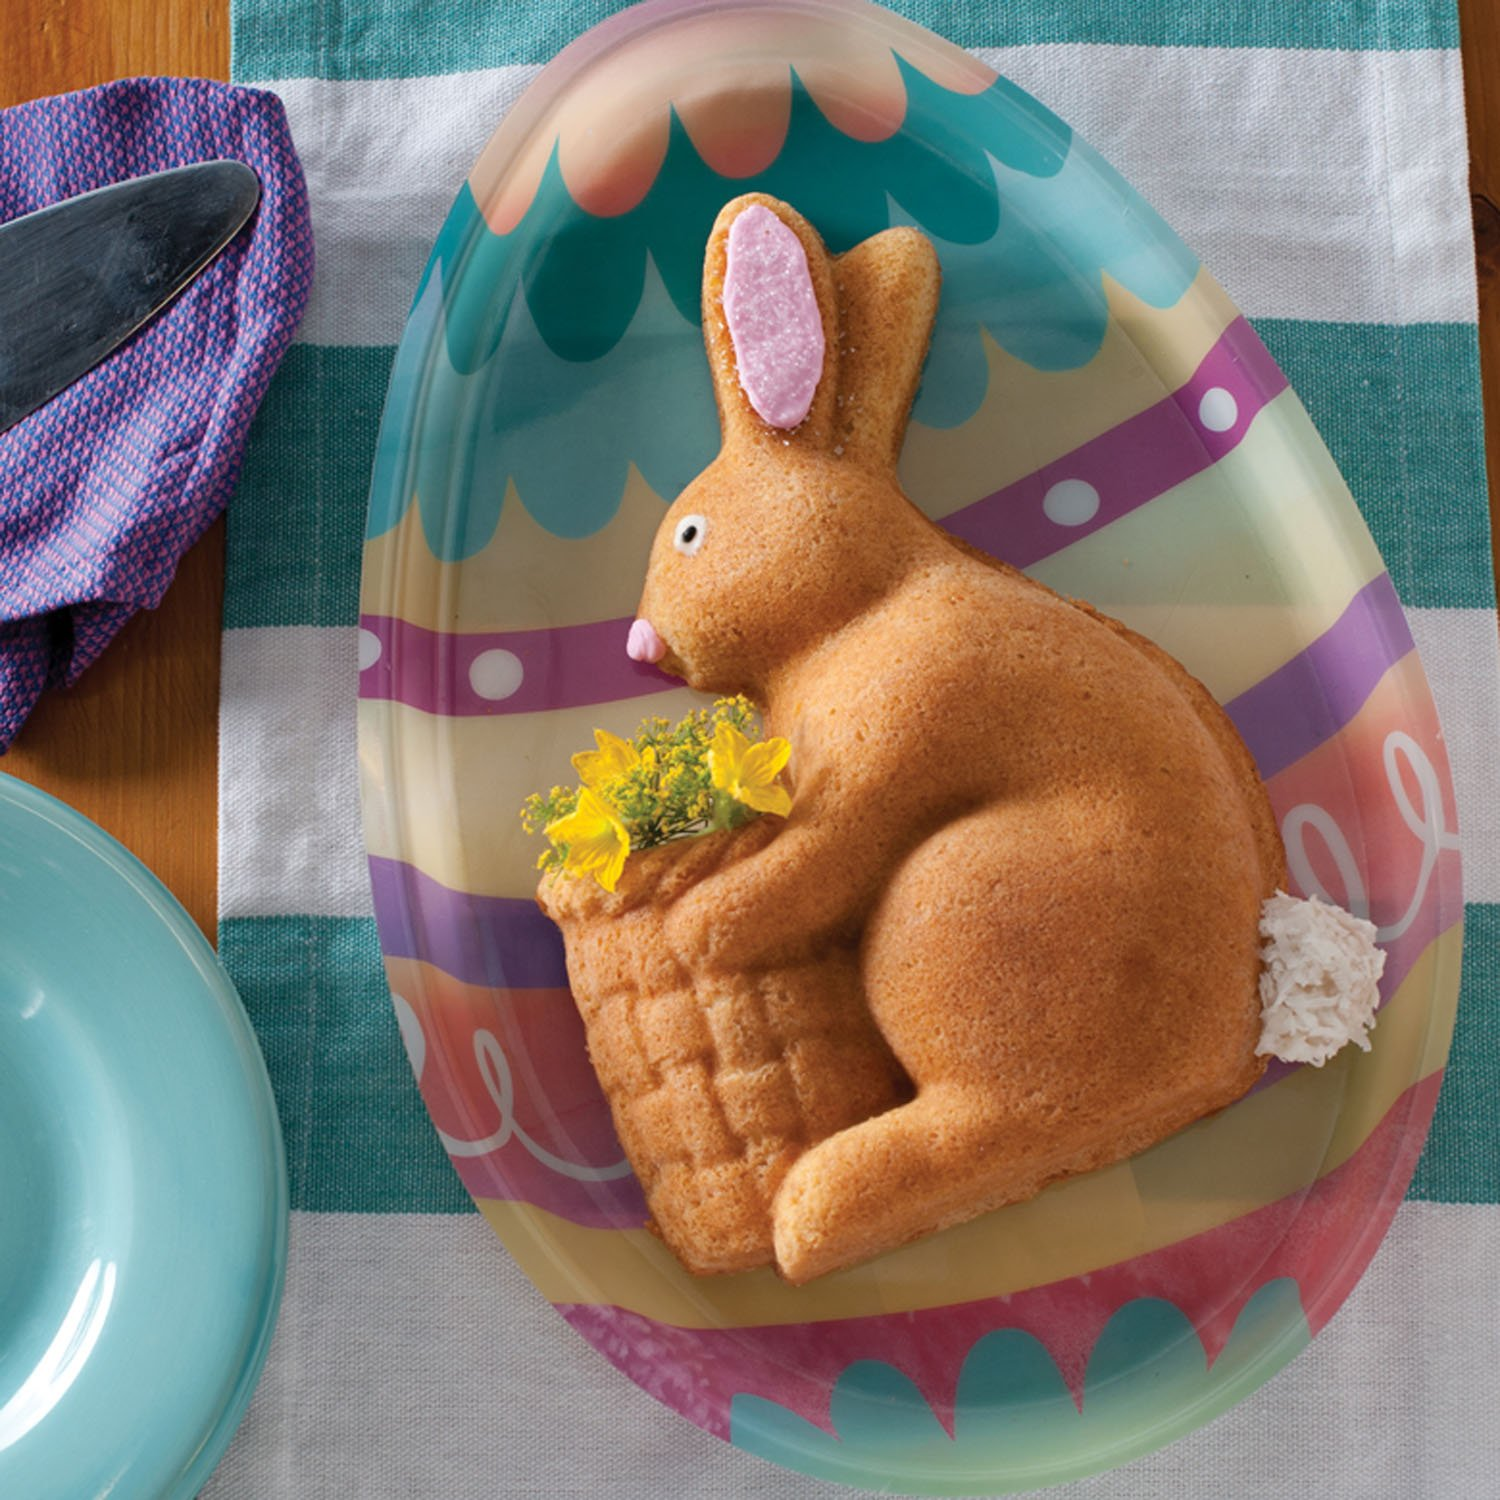 Amazon.com: Nordic Ware Easter Bunny Pan, 5 Cup: Novelty Cake Pans ...